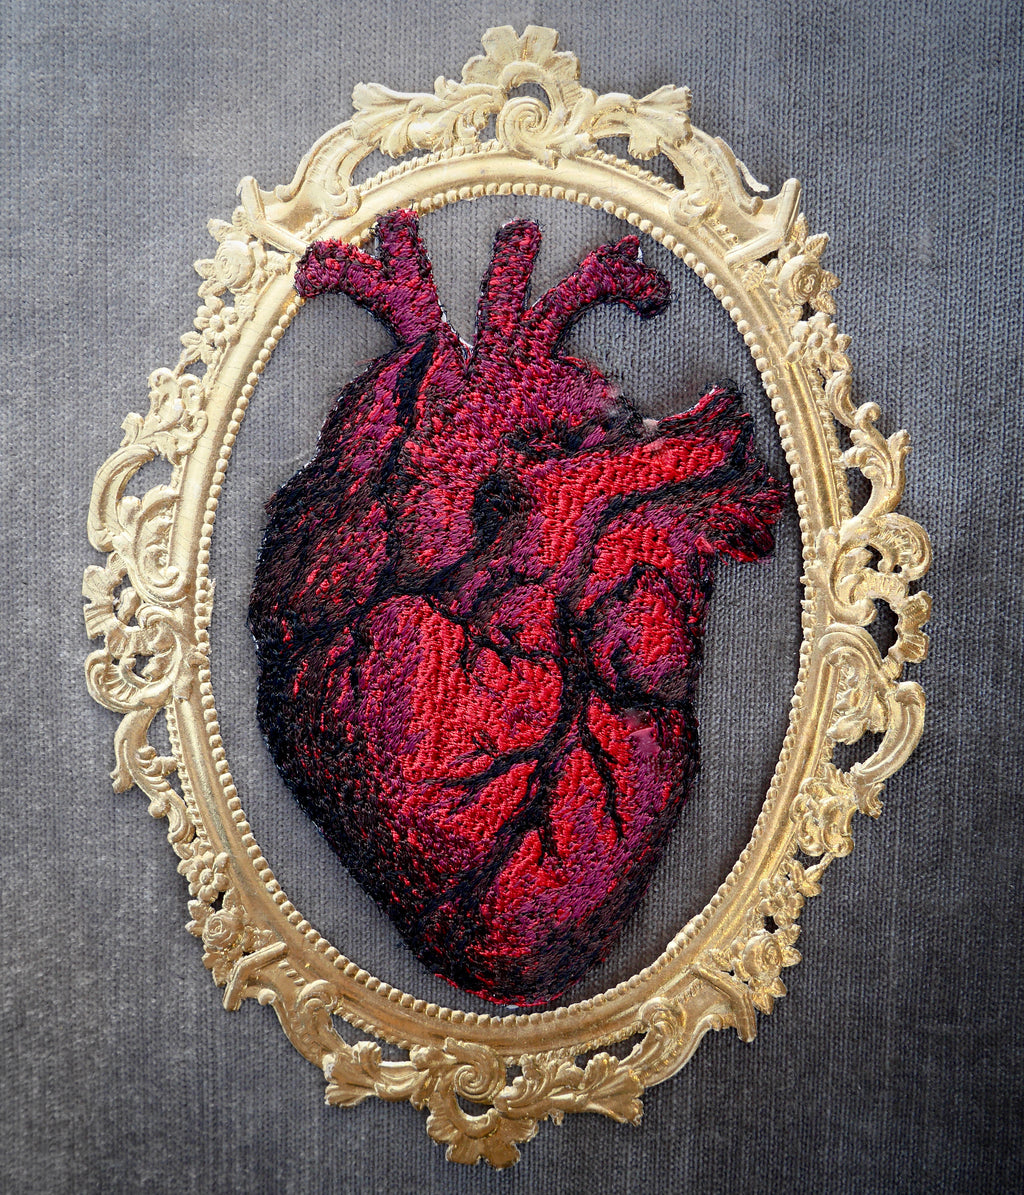 Small Embroidered Heart Patch